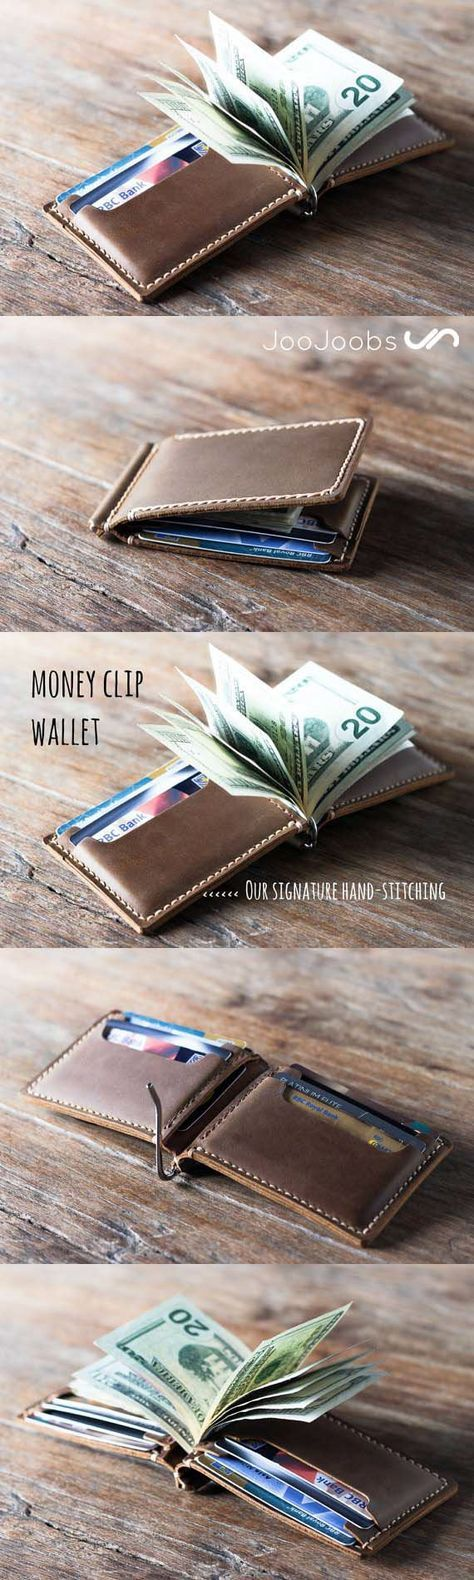 This leather money clip wallet is handmade and hand-stitched.  Inside there are 4 card slots which can hold 2 cards each for a total of 8 cards.  Instead of a cash pocket, we have replaced it with an easy to use, money clip.  Money clip wallets allow you to hold more and access it quicker.